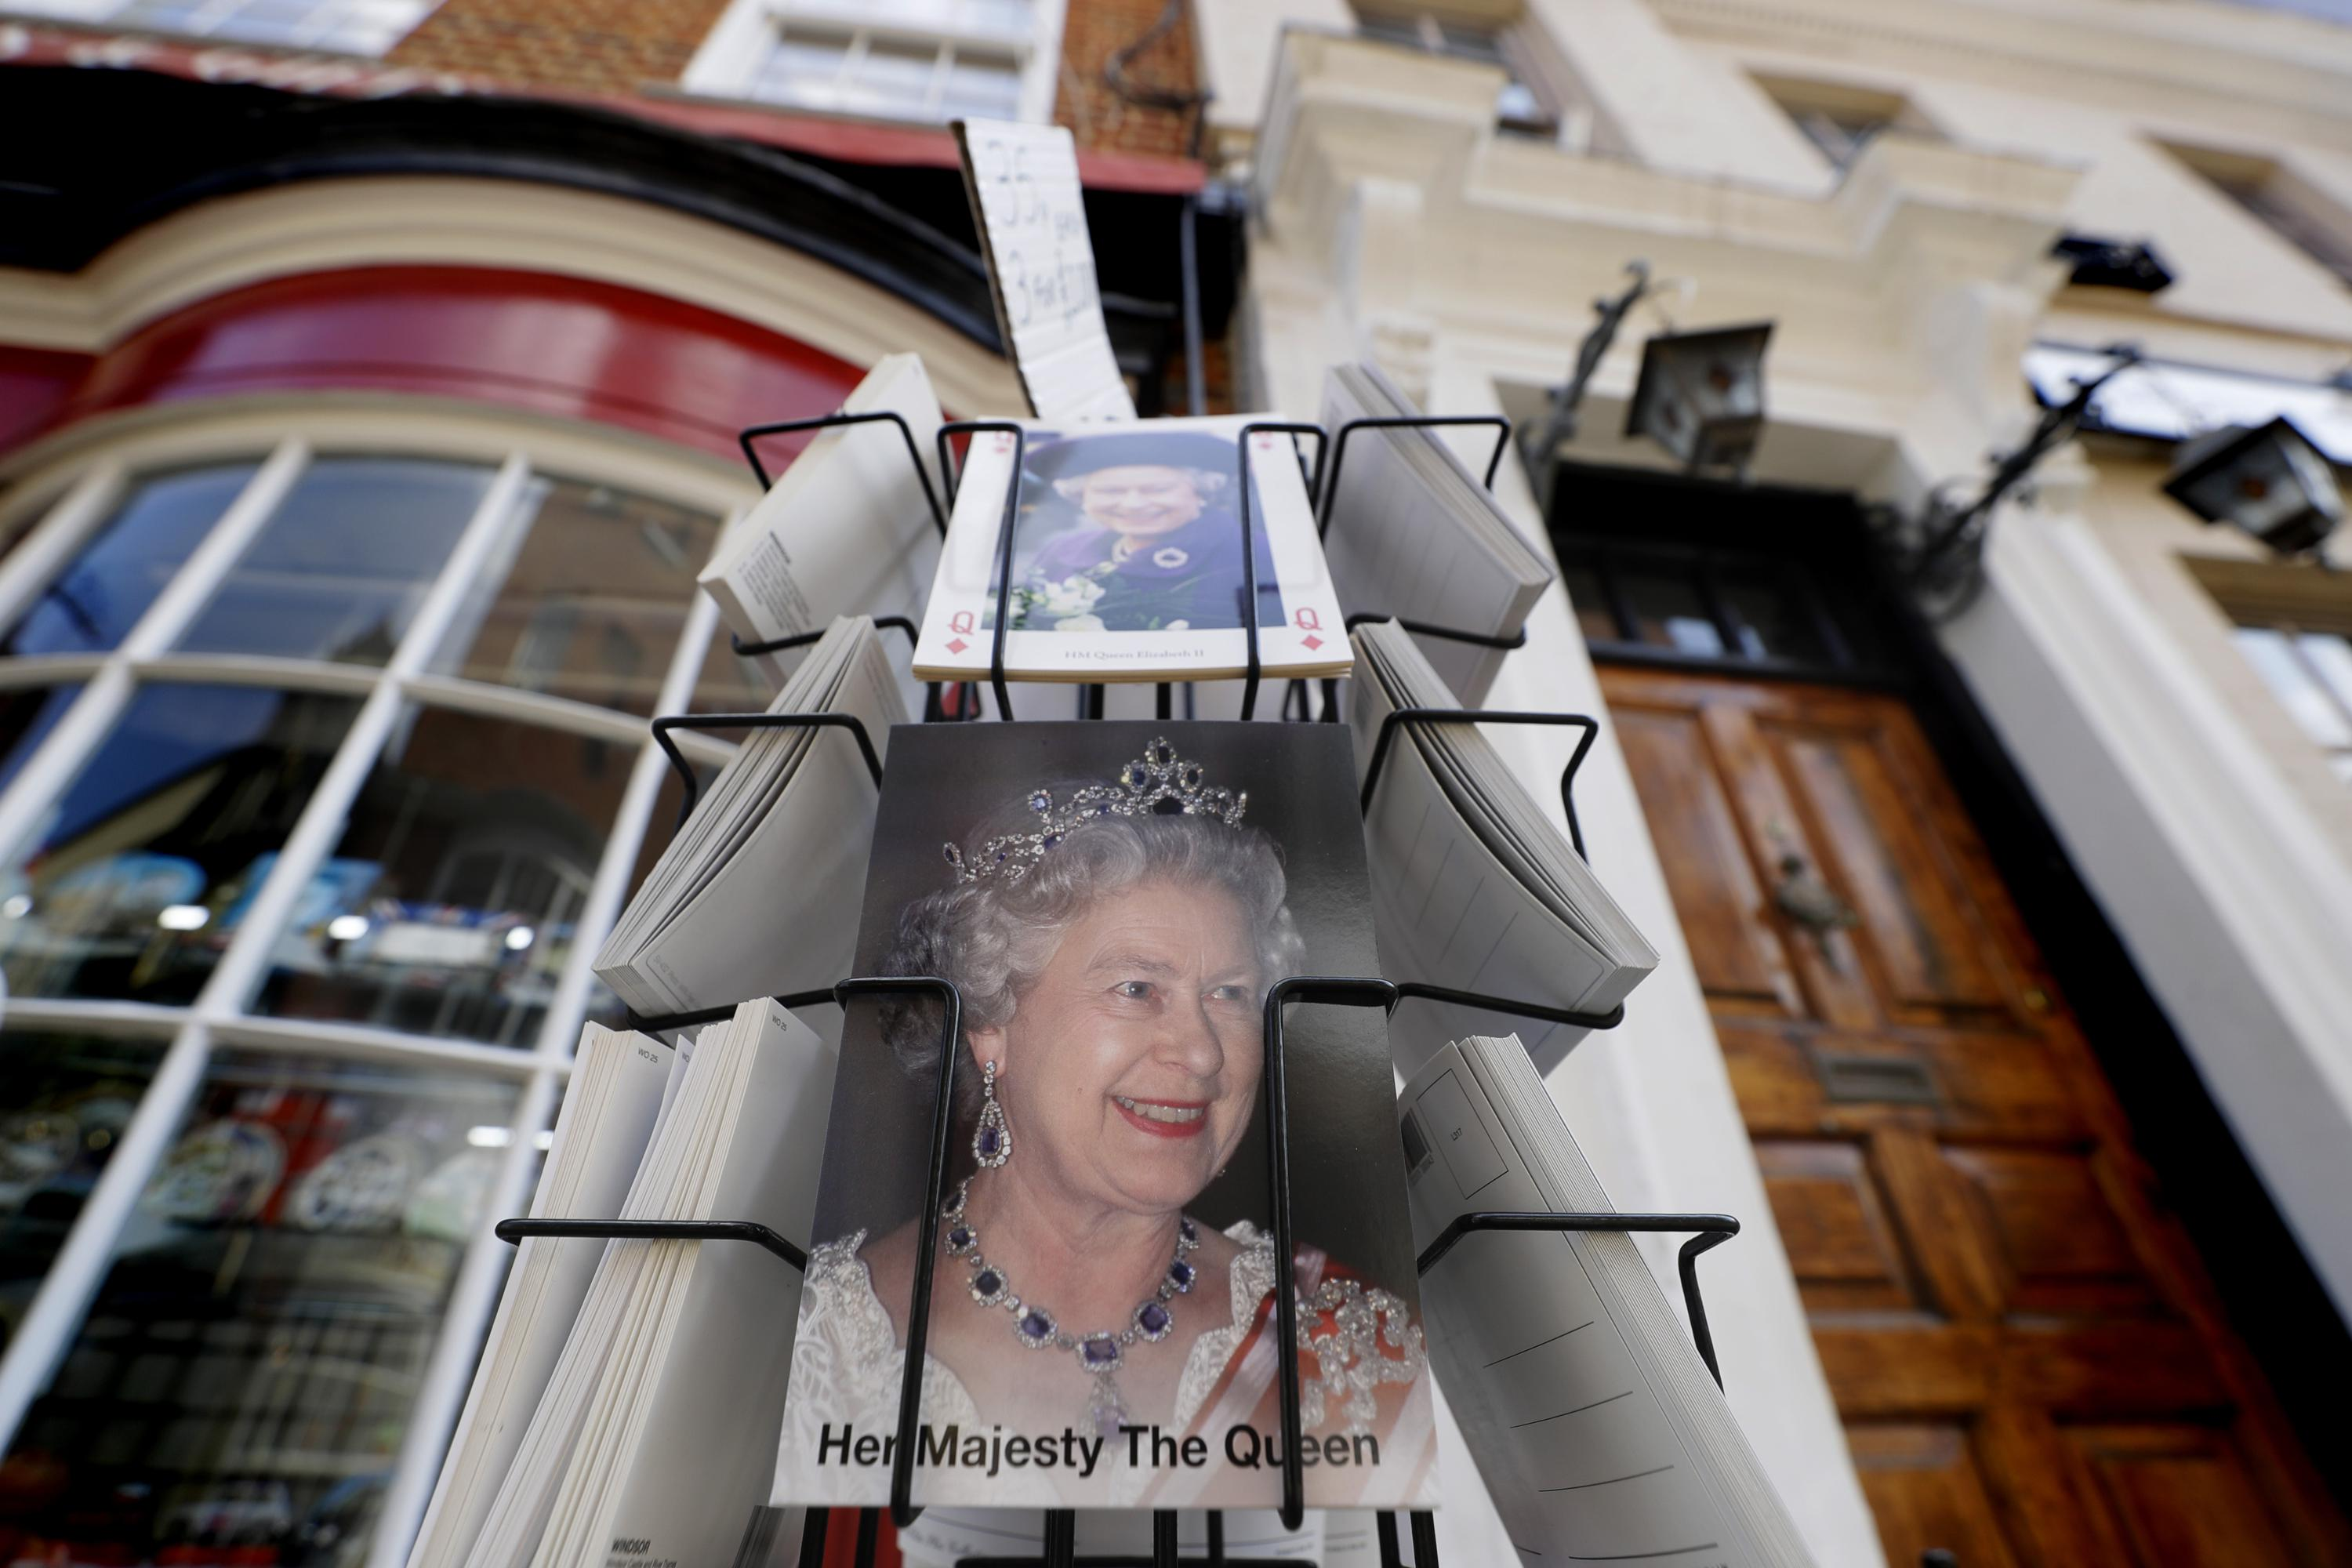 Queen thankful for 'support, kindness' after Philip's death